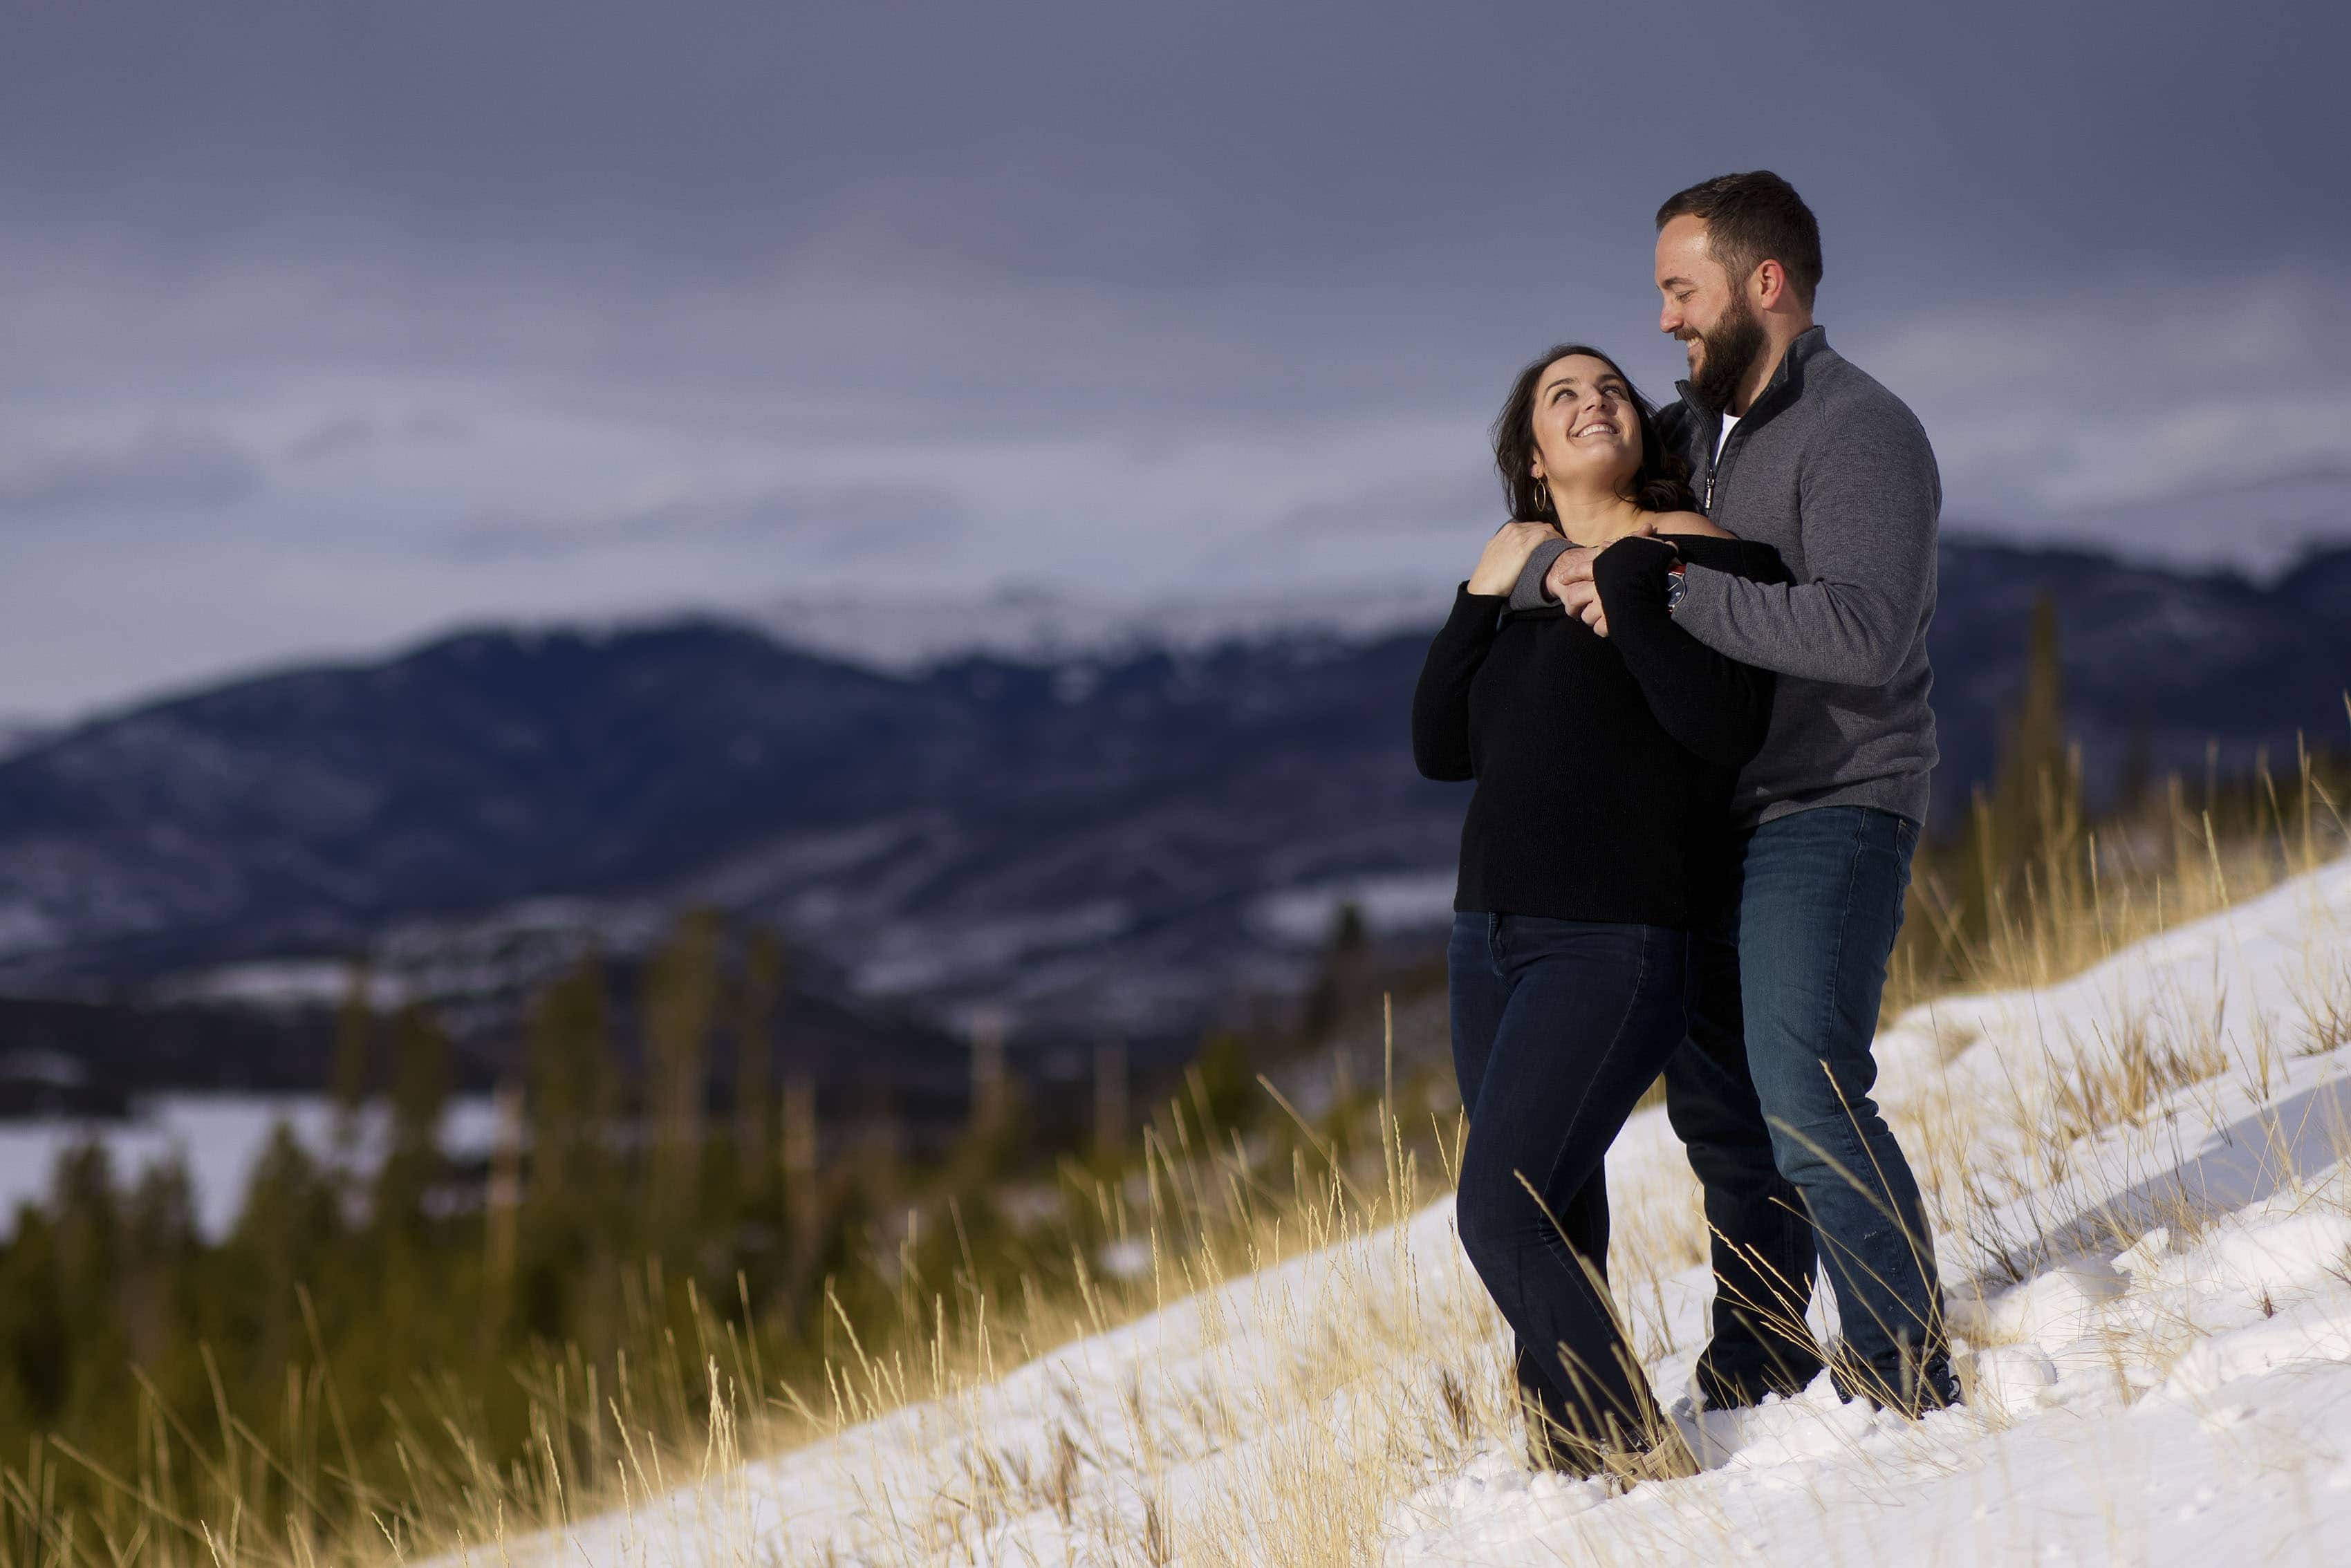 Bethany and Nick enjoy a moment together in Frisco, Colorado during their engagement photos